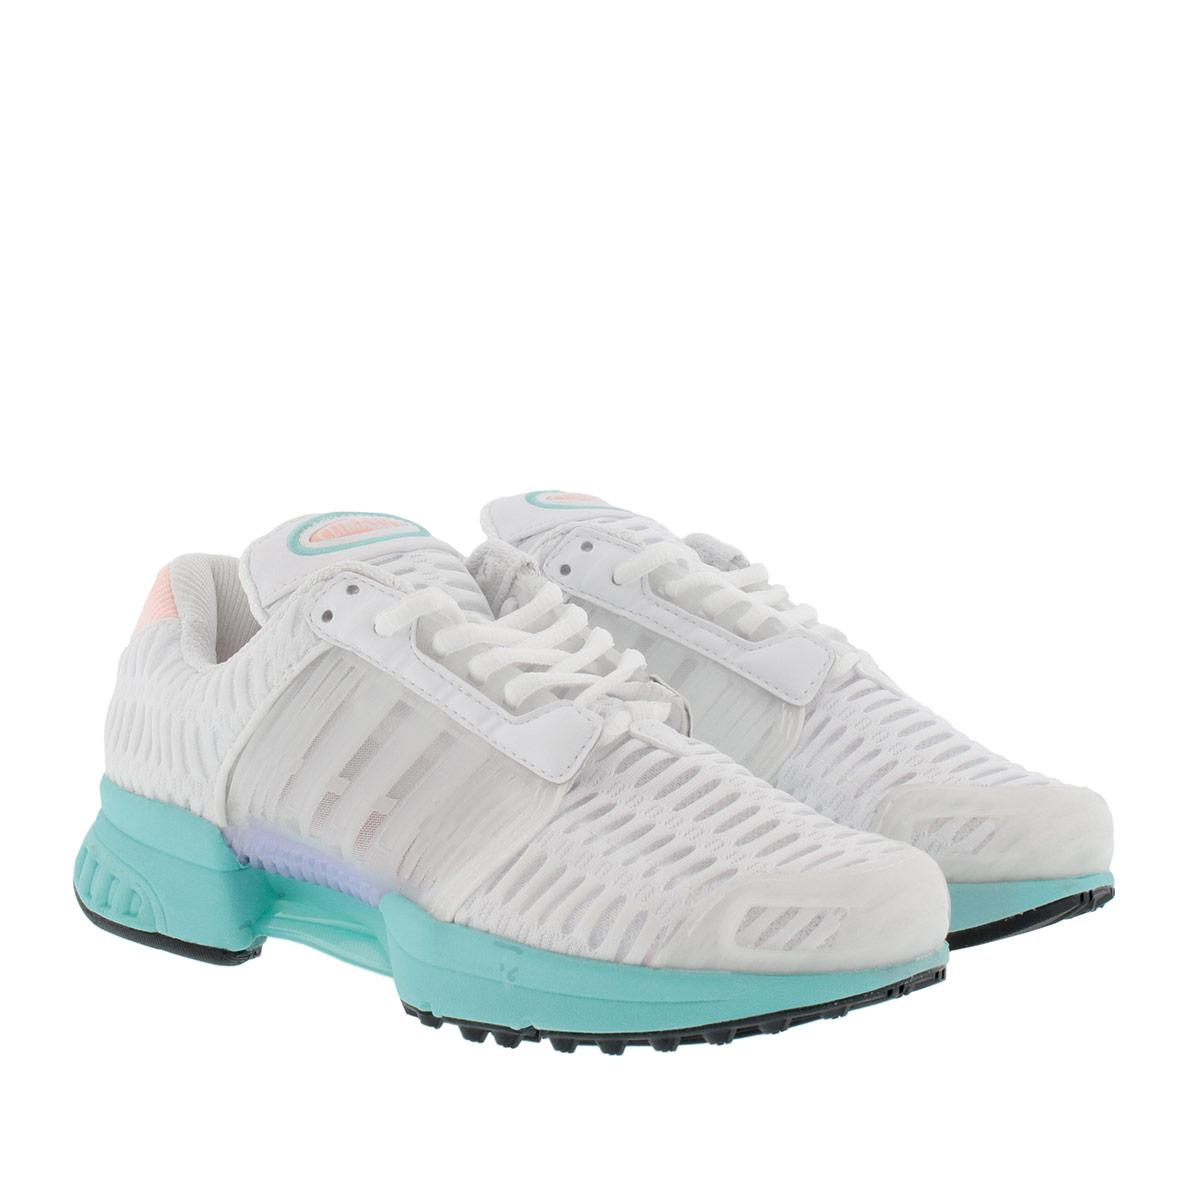 official photos b00e9 68f1c Adidas Originals Womens Climacool 1 Sneaker Whitemint in Whi